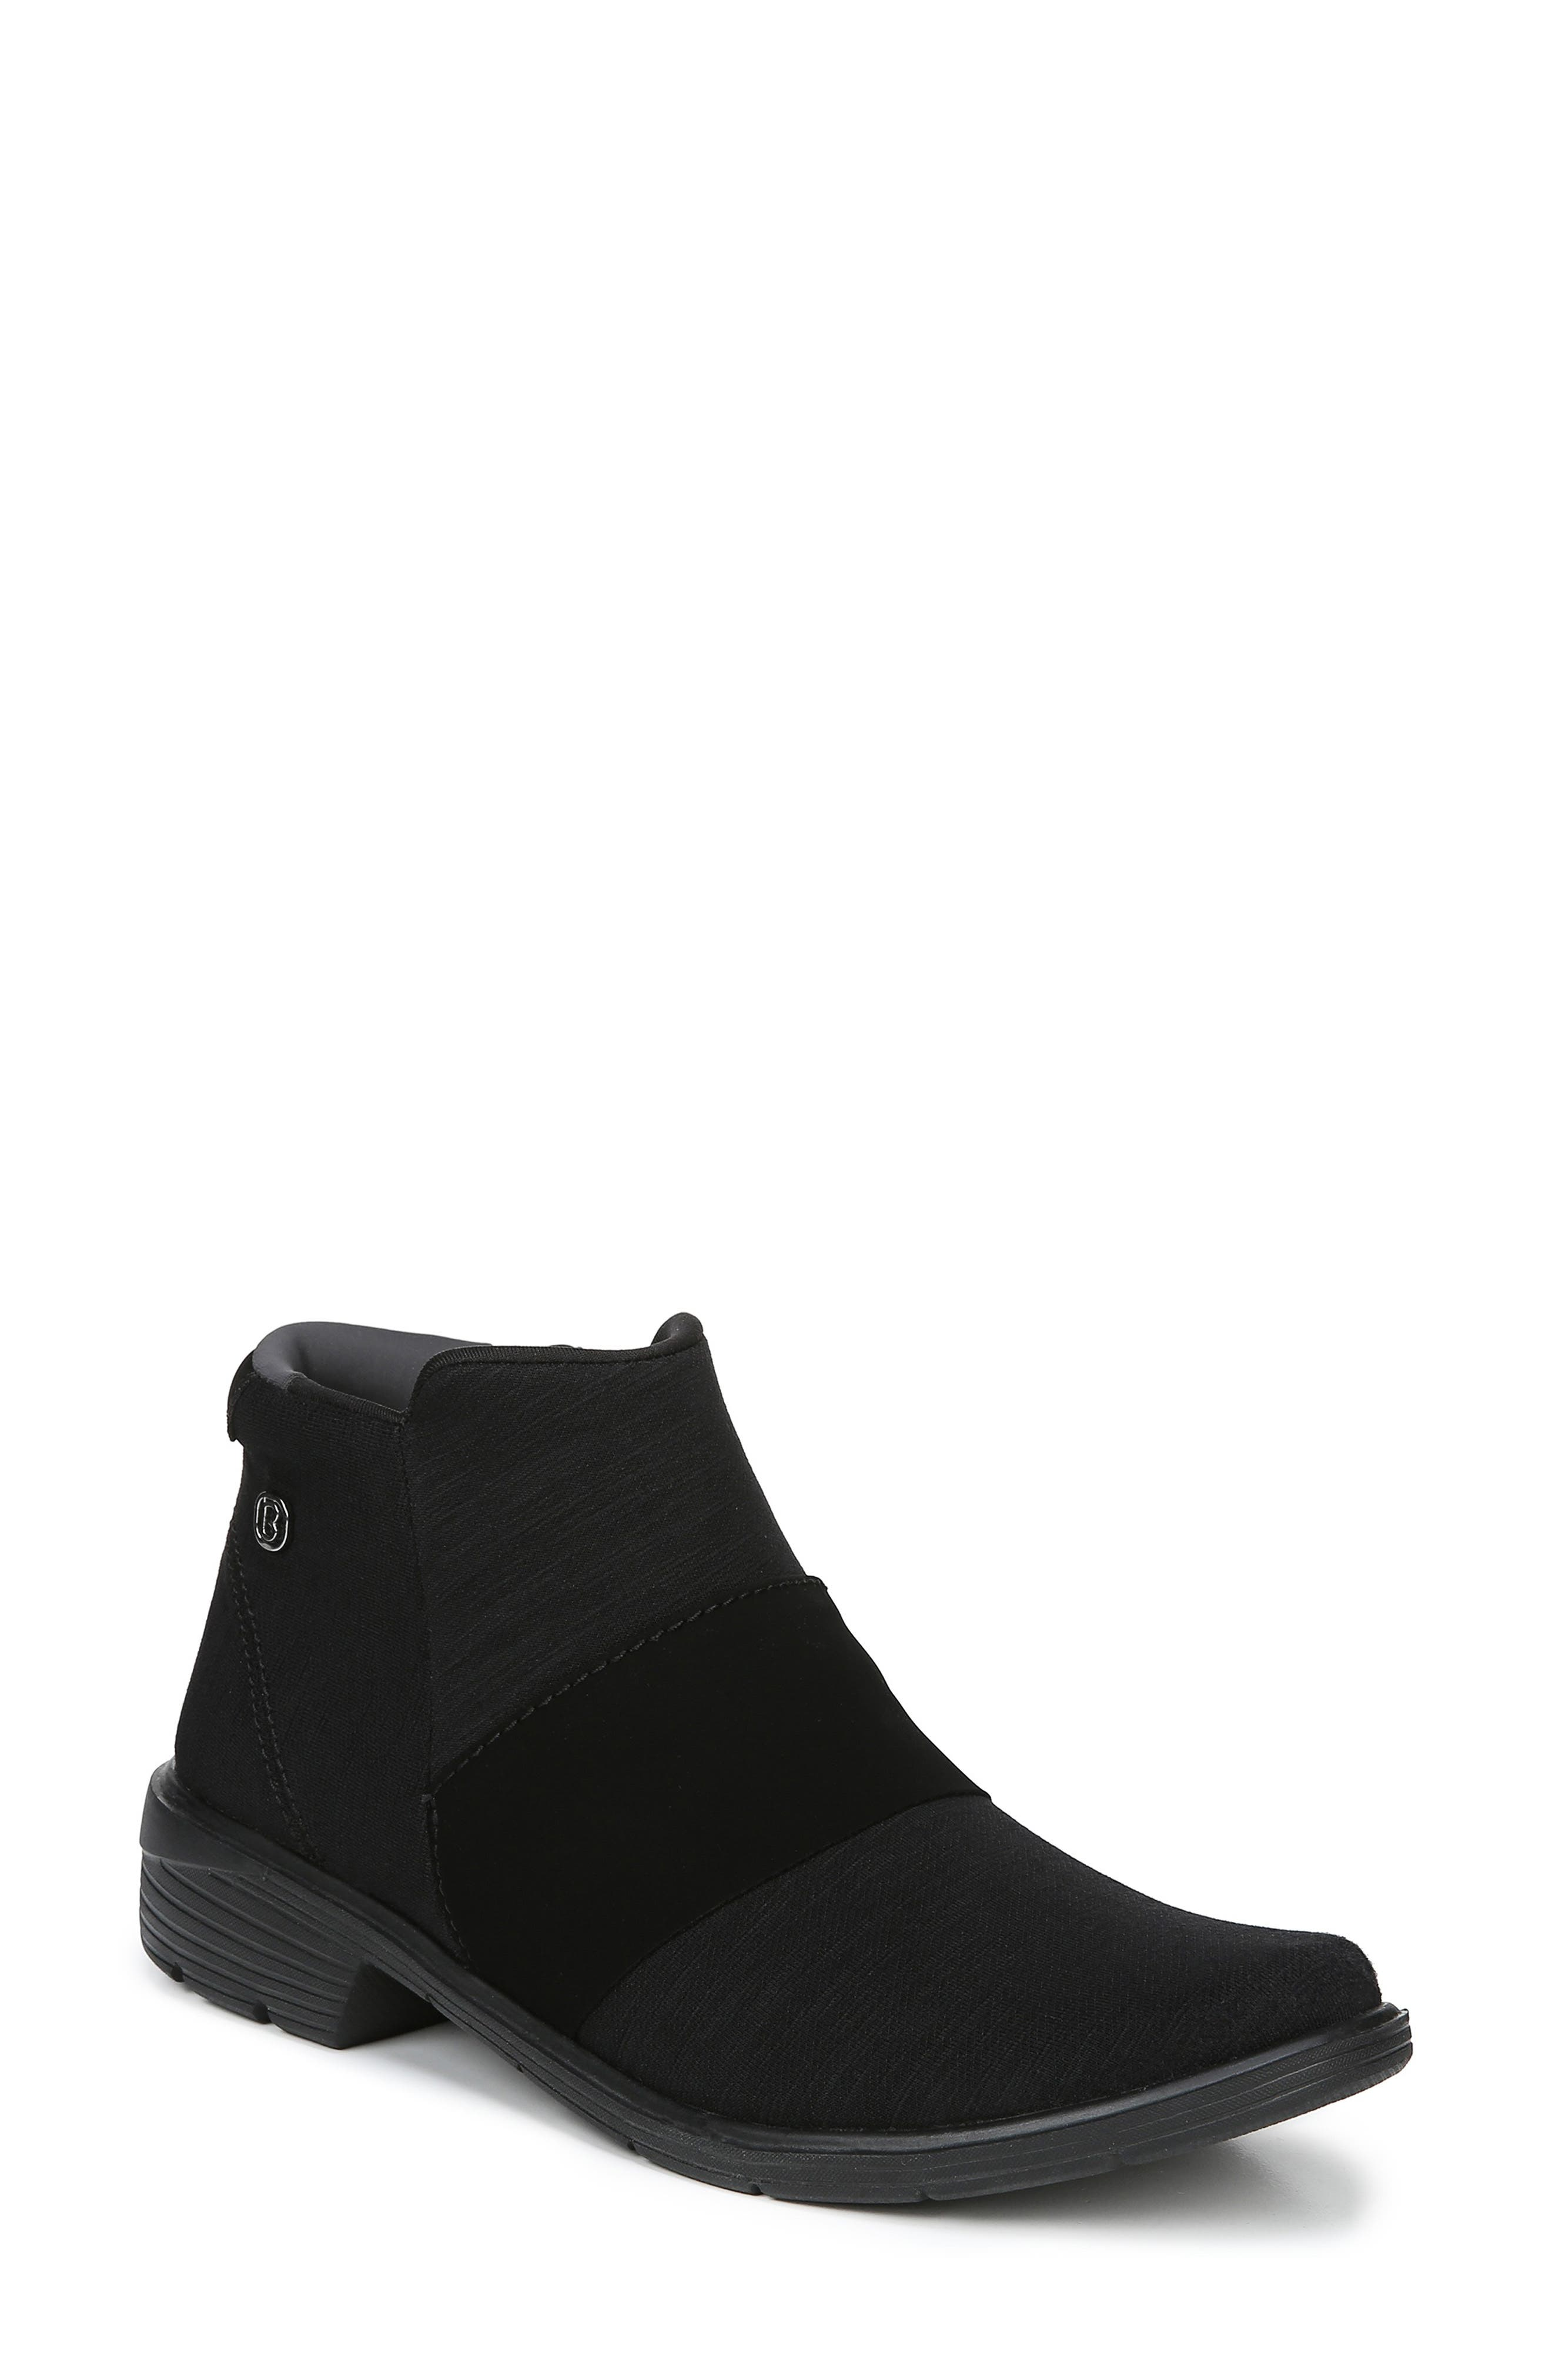 Billie Bootie,                             Main thumbnail 1, color,                             BLACK THICK HEATHER FABRIC